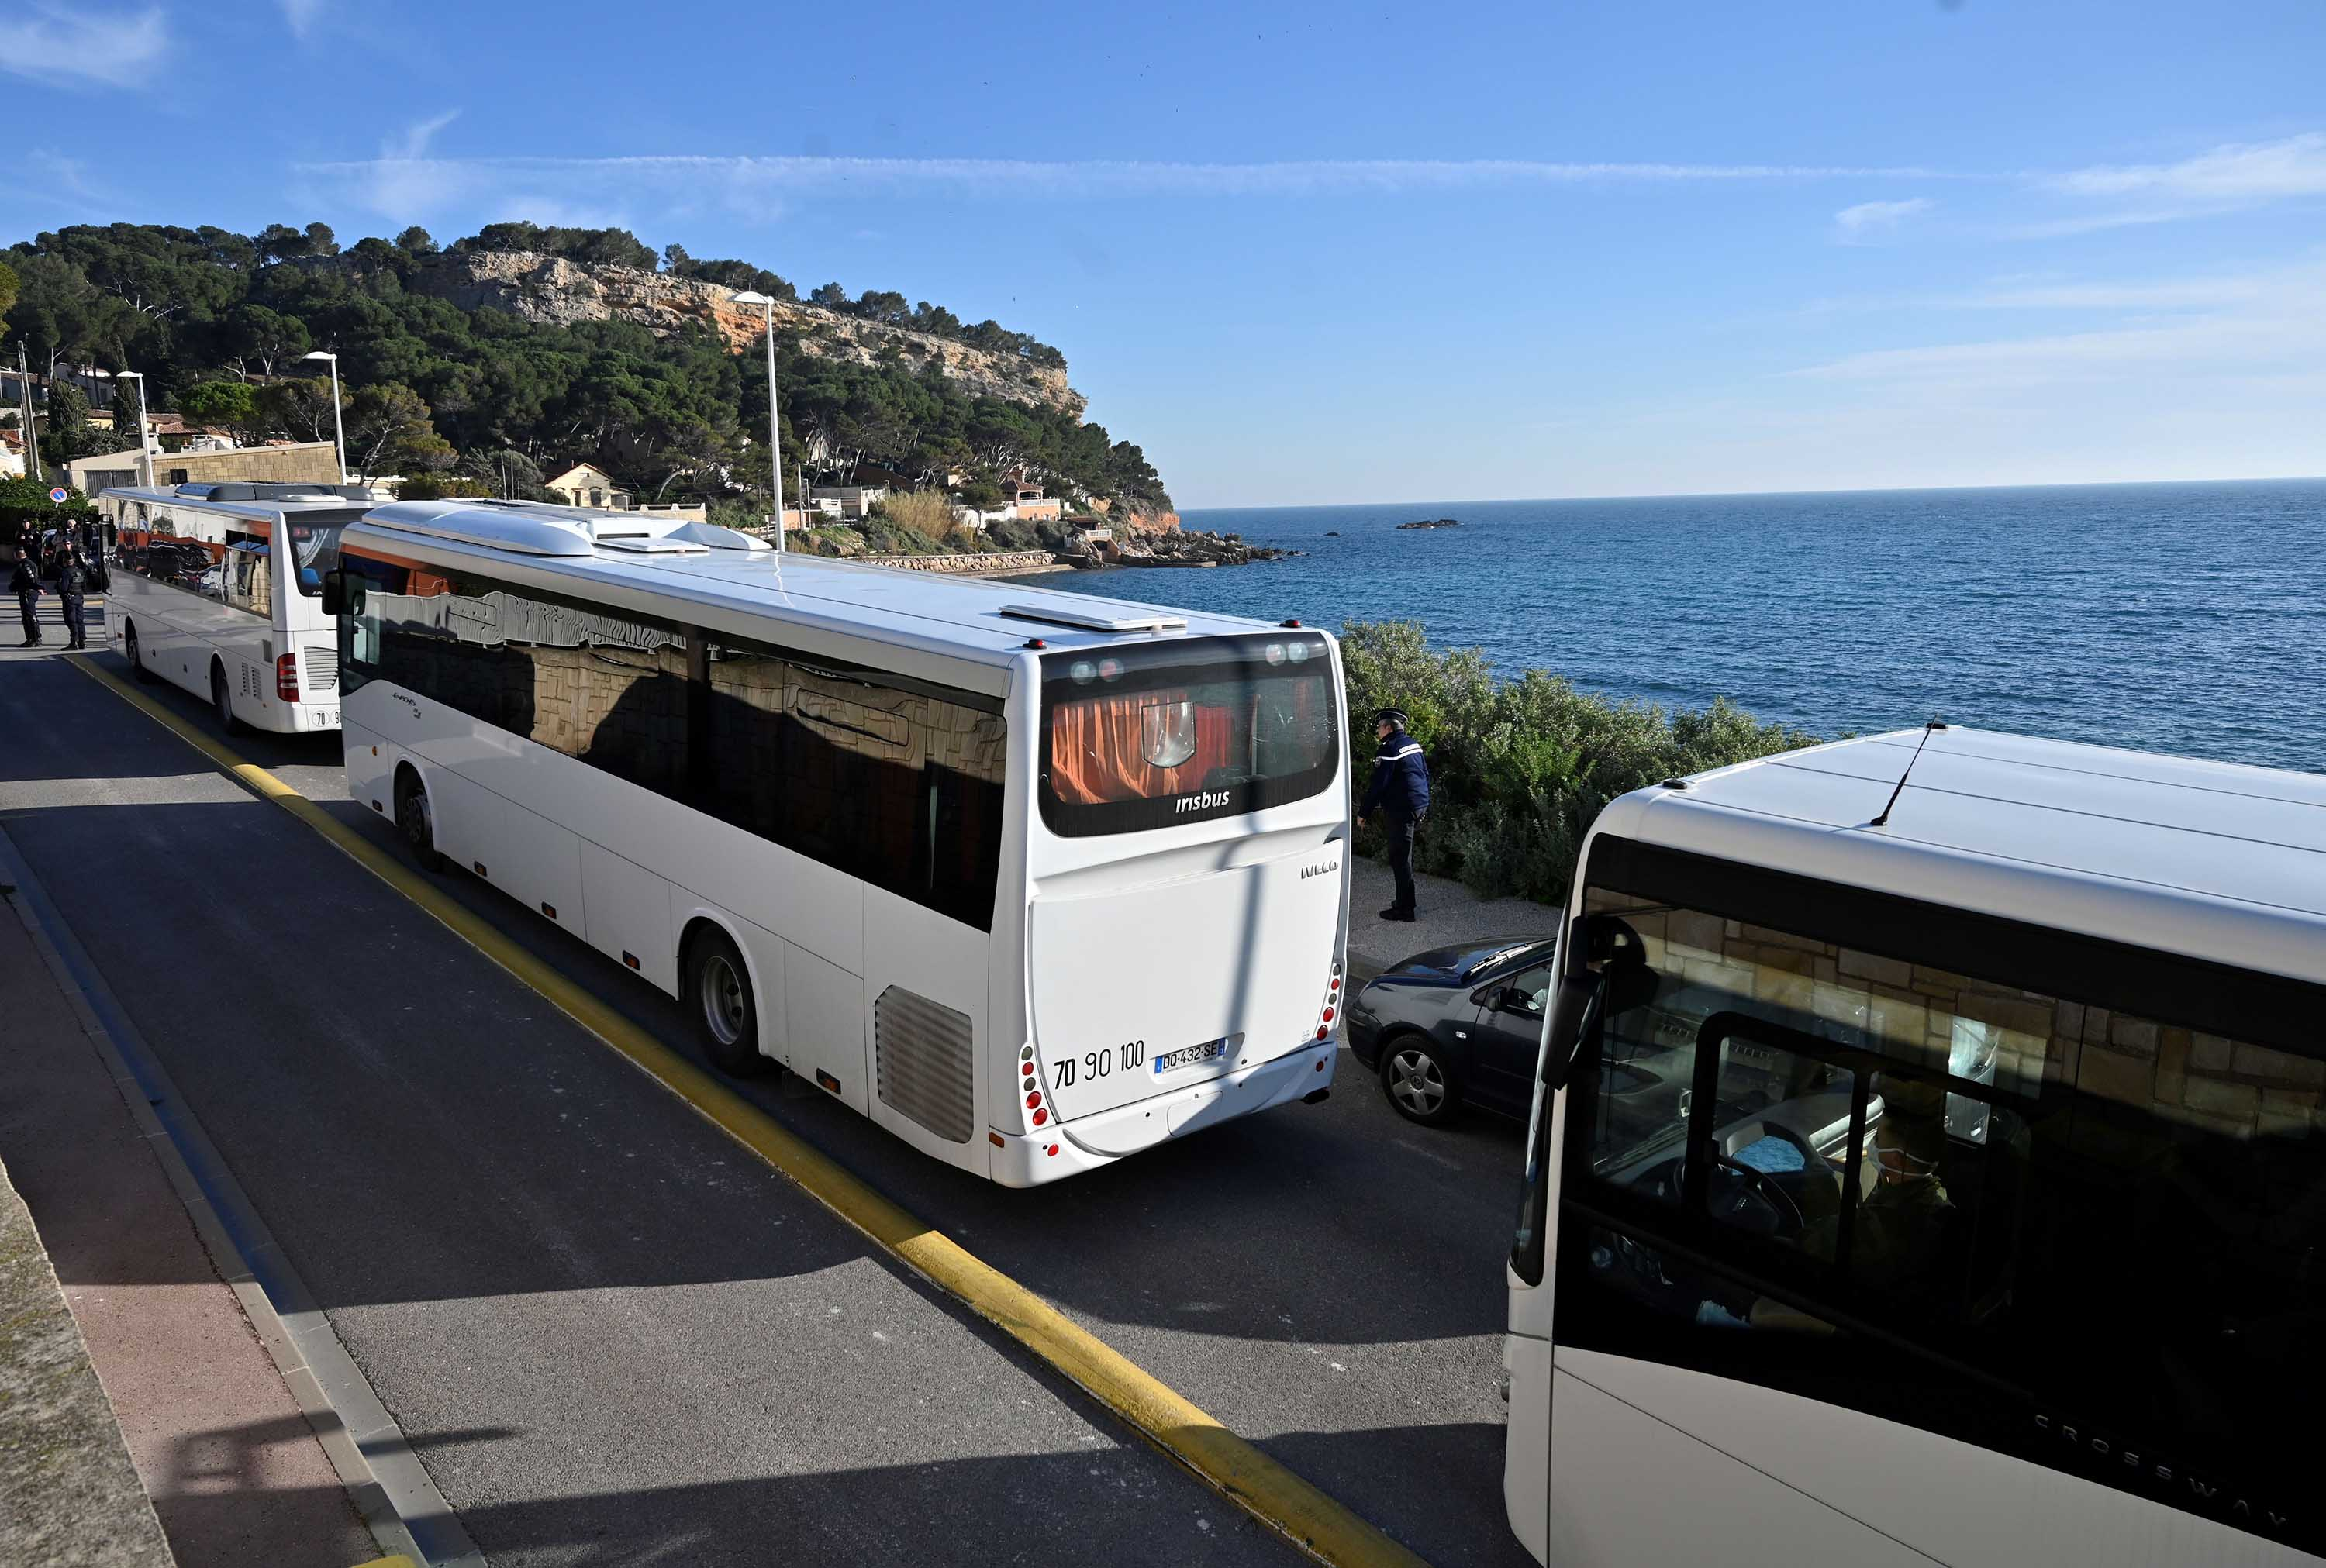 Buses believed to contain French citizens after their evacuation from the Chinese city of Wuhan arrive at the Vacanciel Holiday Resort in Carry-le-Rouet, near Marseille, France on Friday.